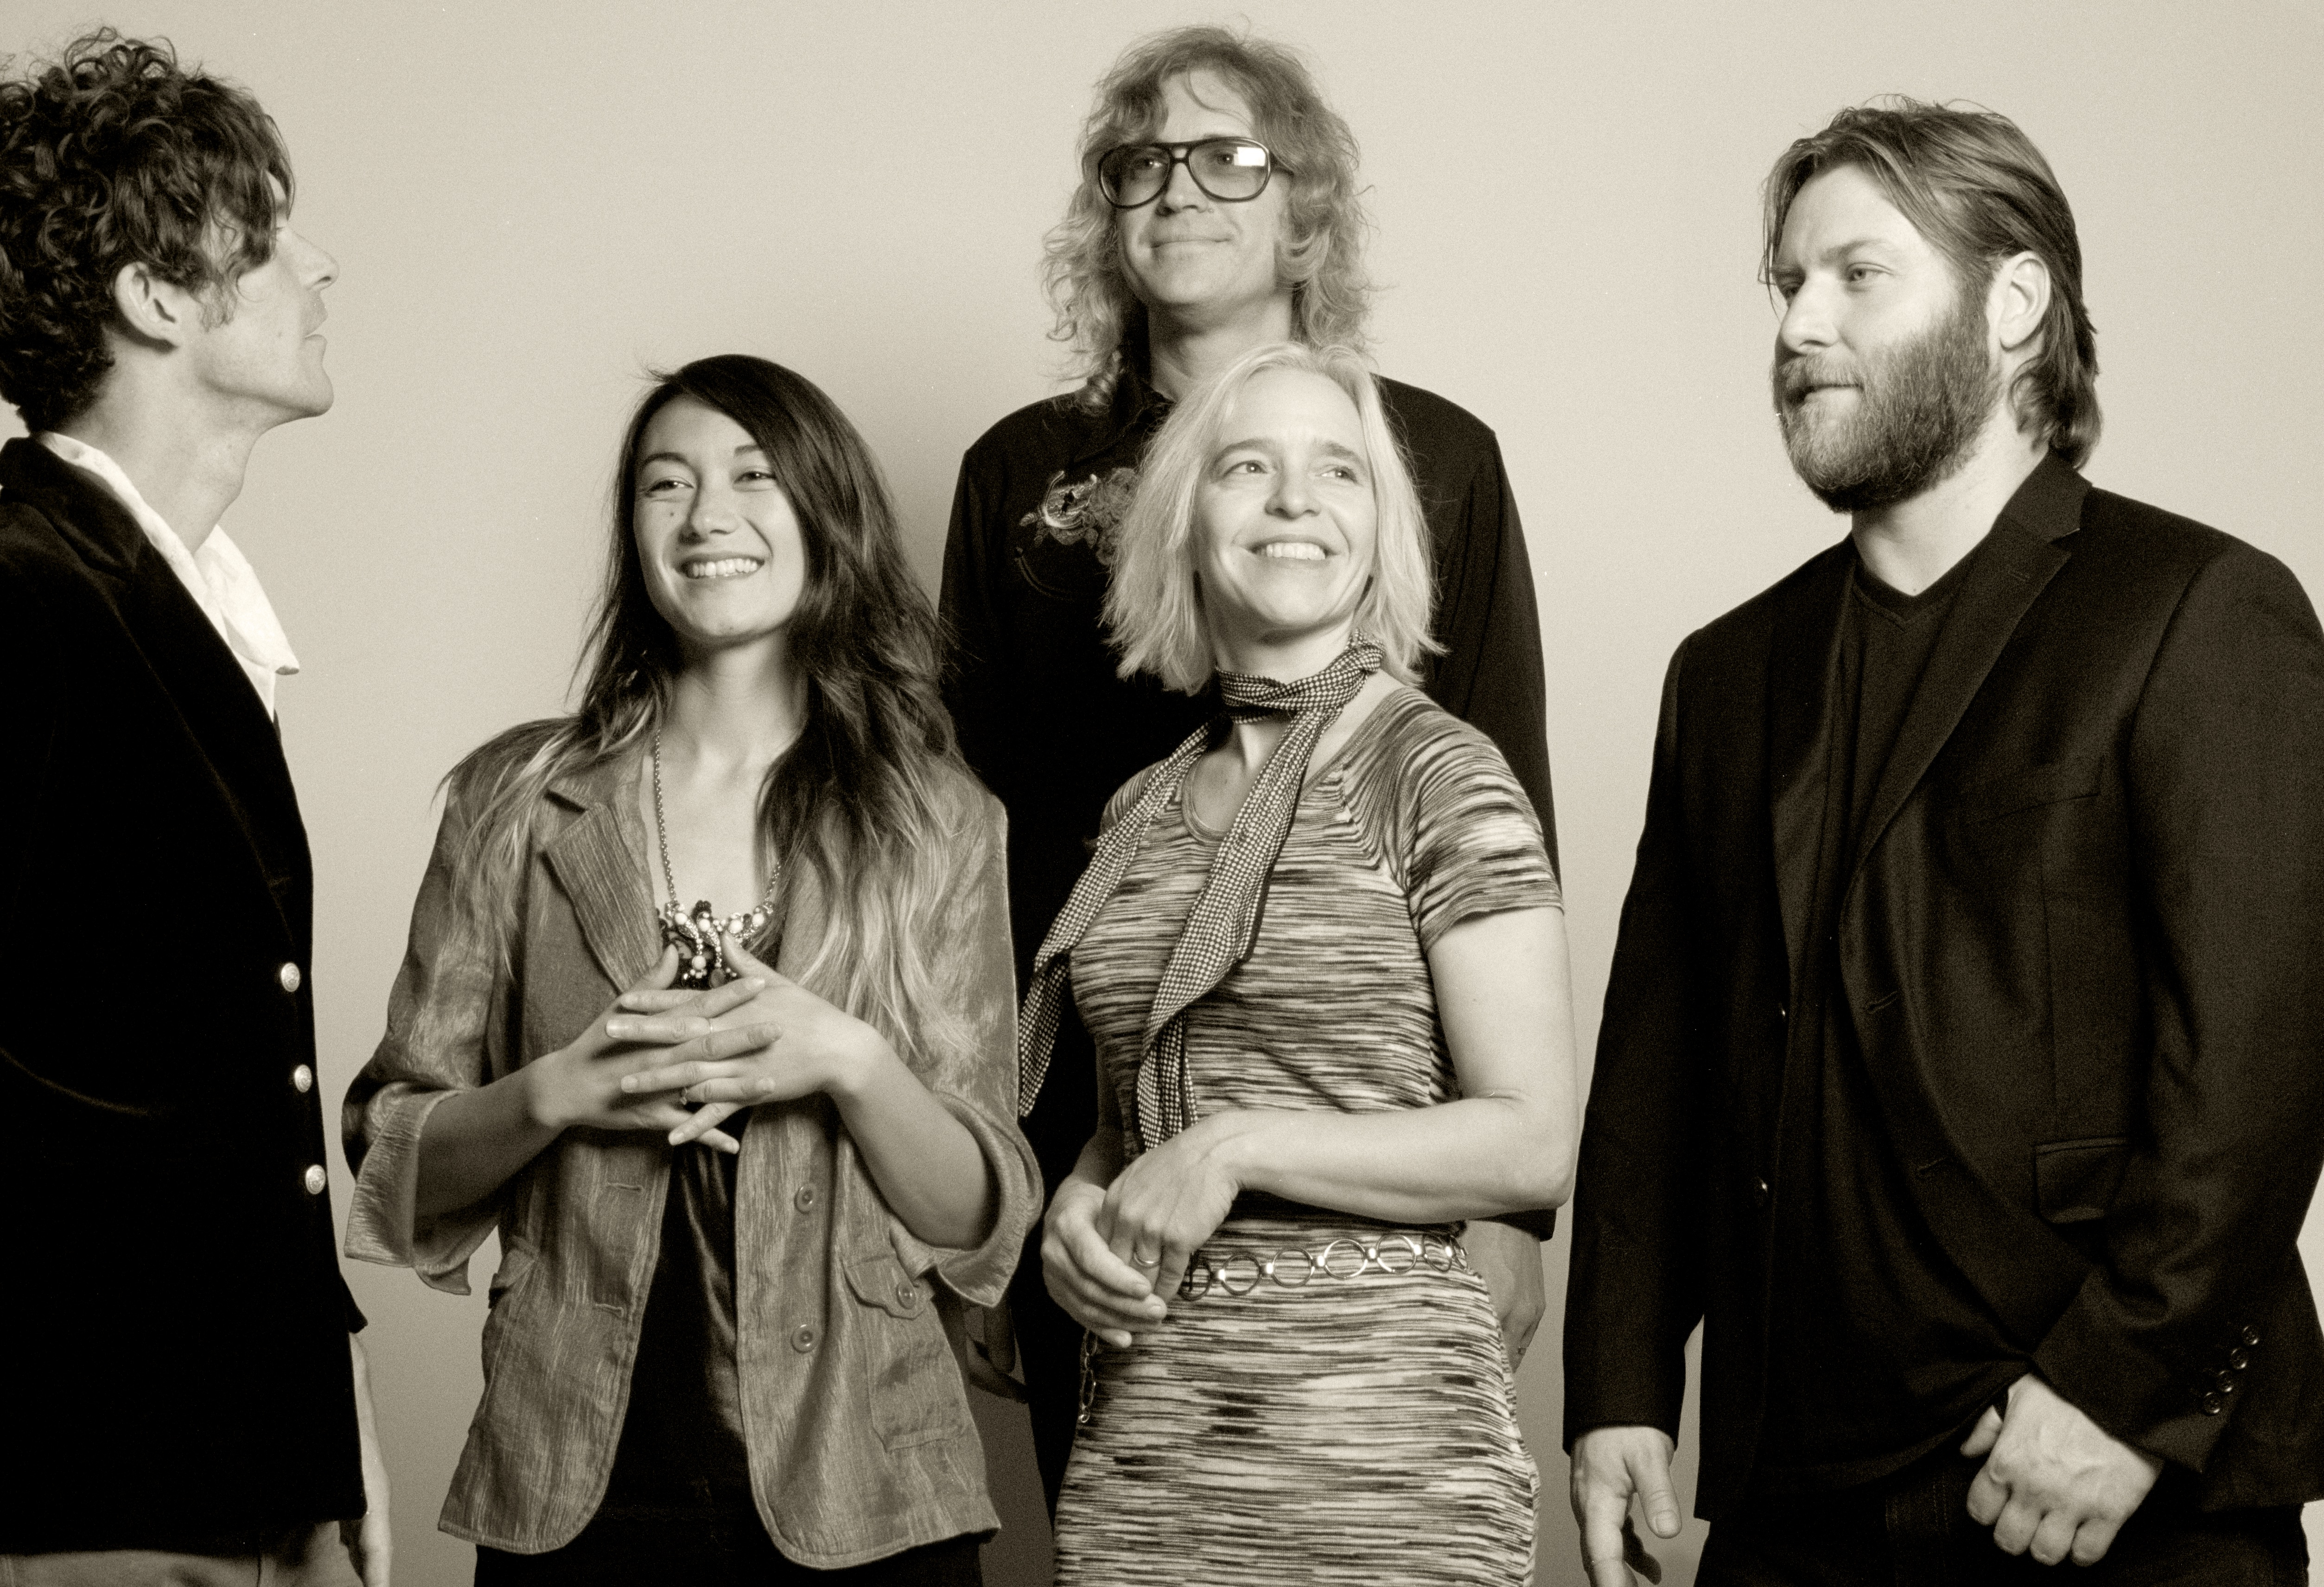 The Besnard Lakes announce new album 'A Coliseum Complex